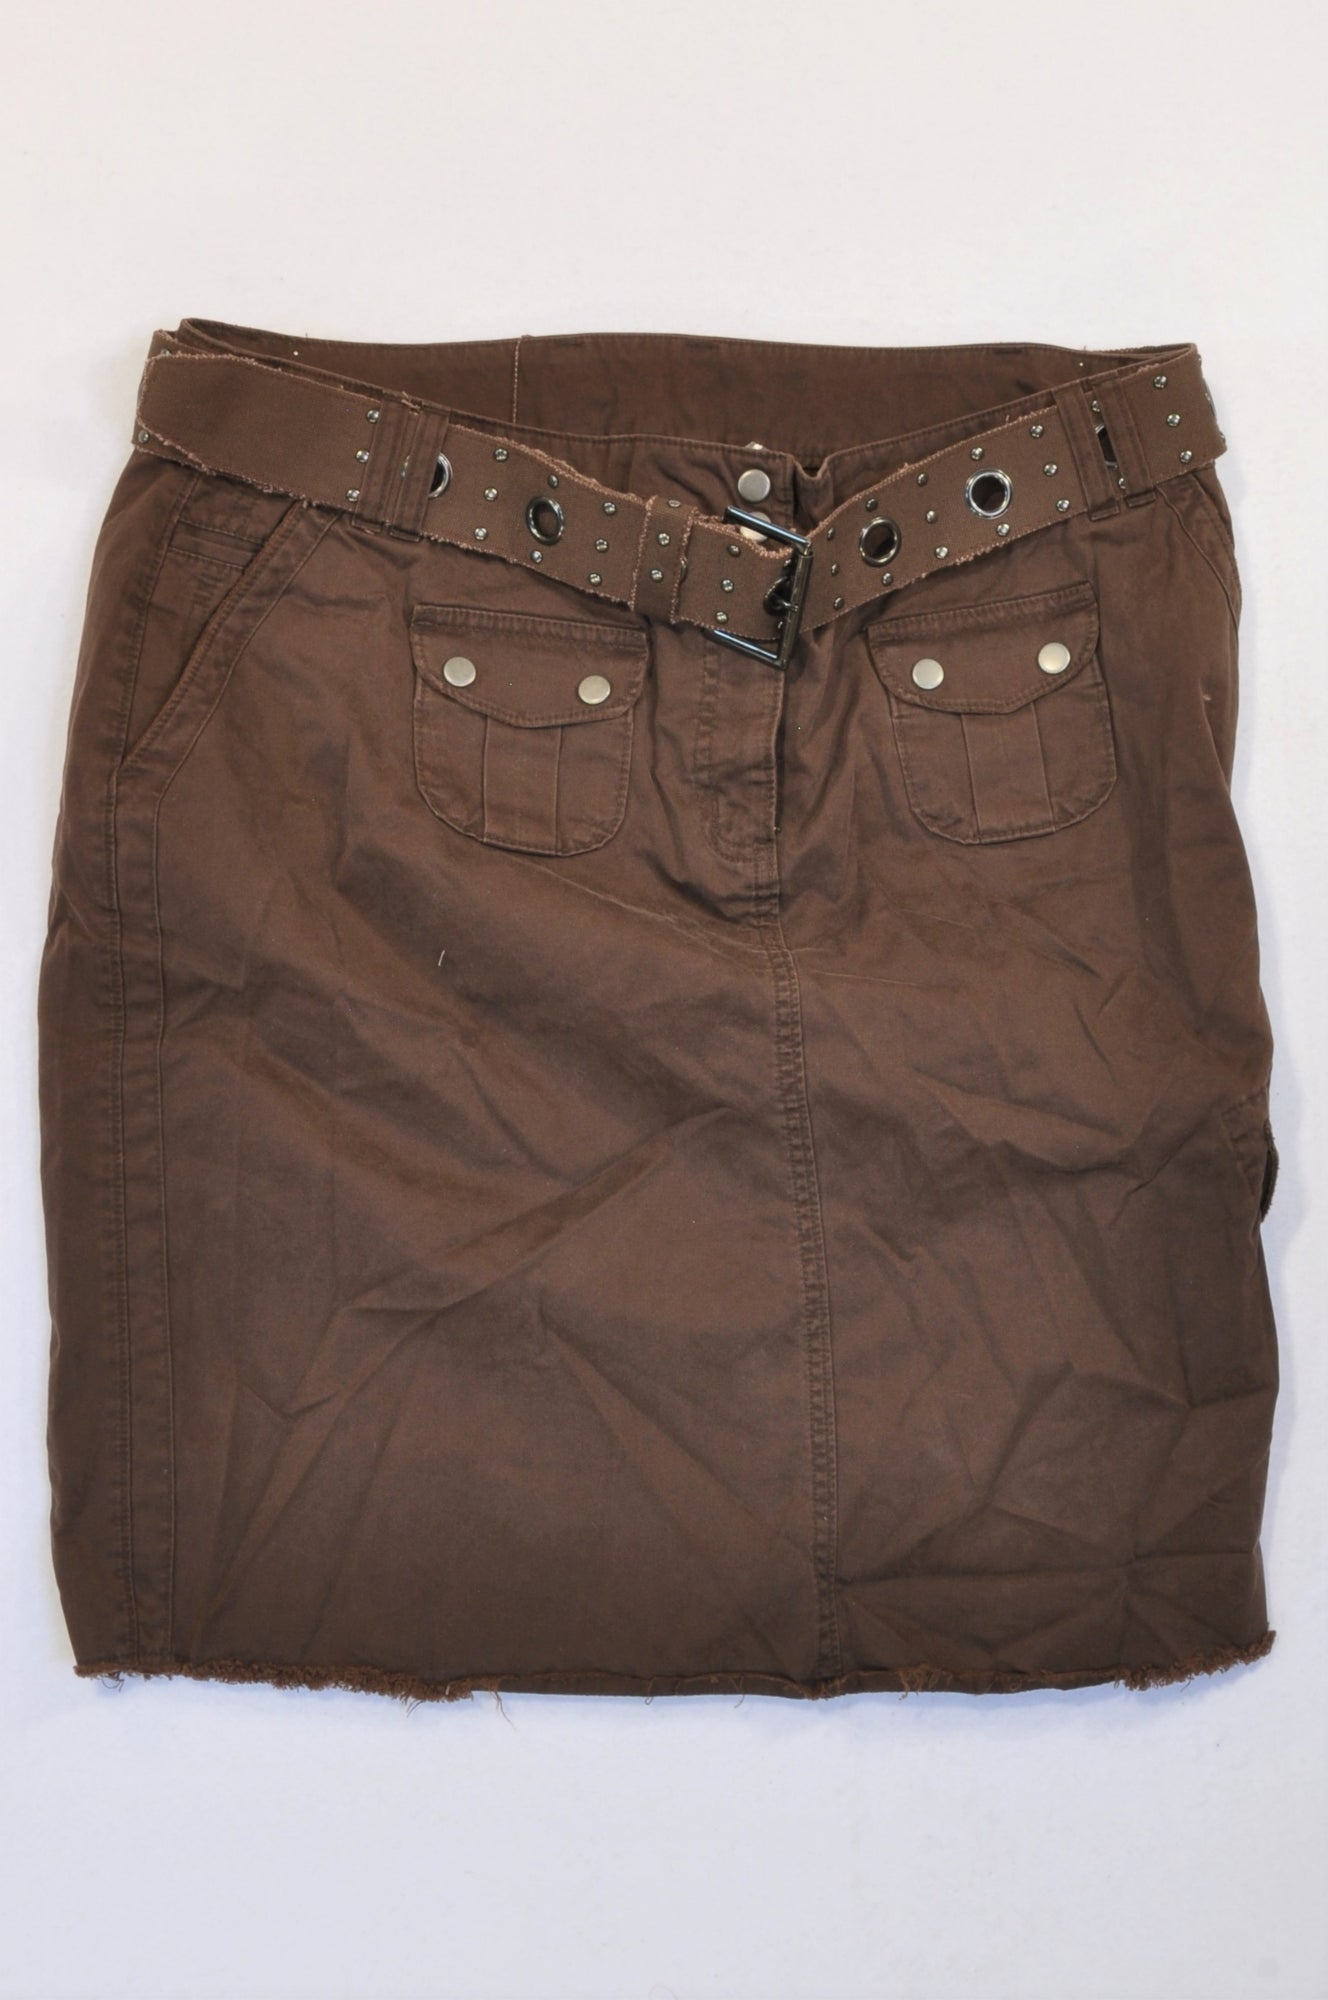 New Next Chocolate Brown Belted Cargo Skirt Women Size 20